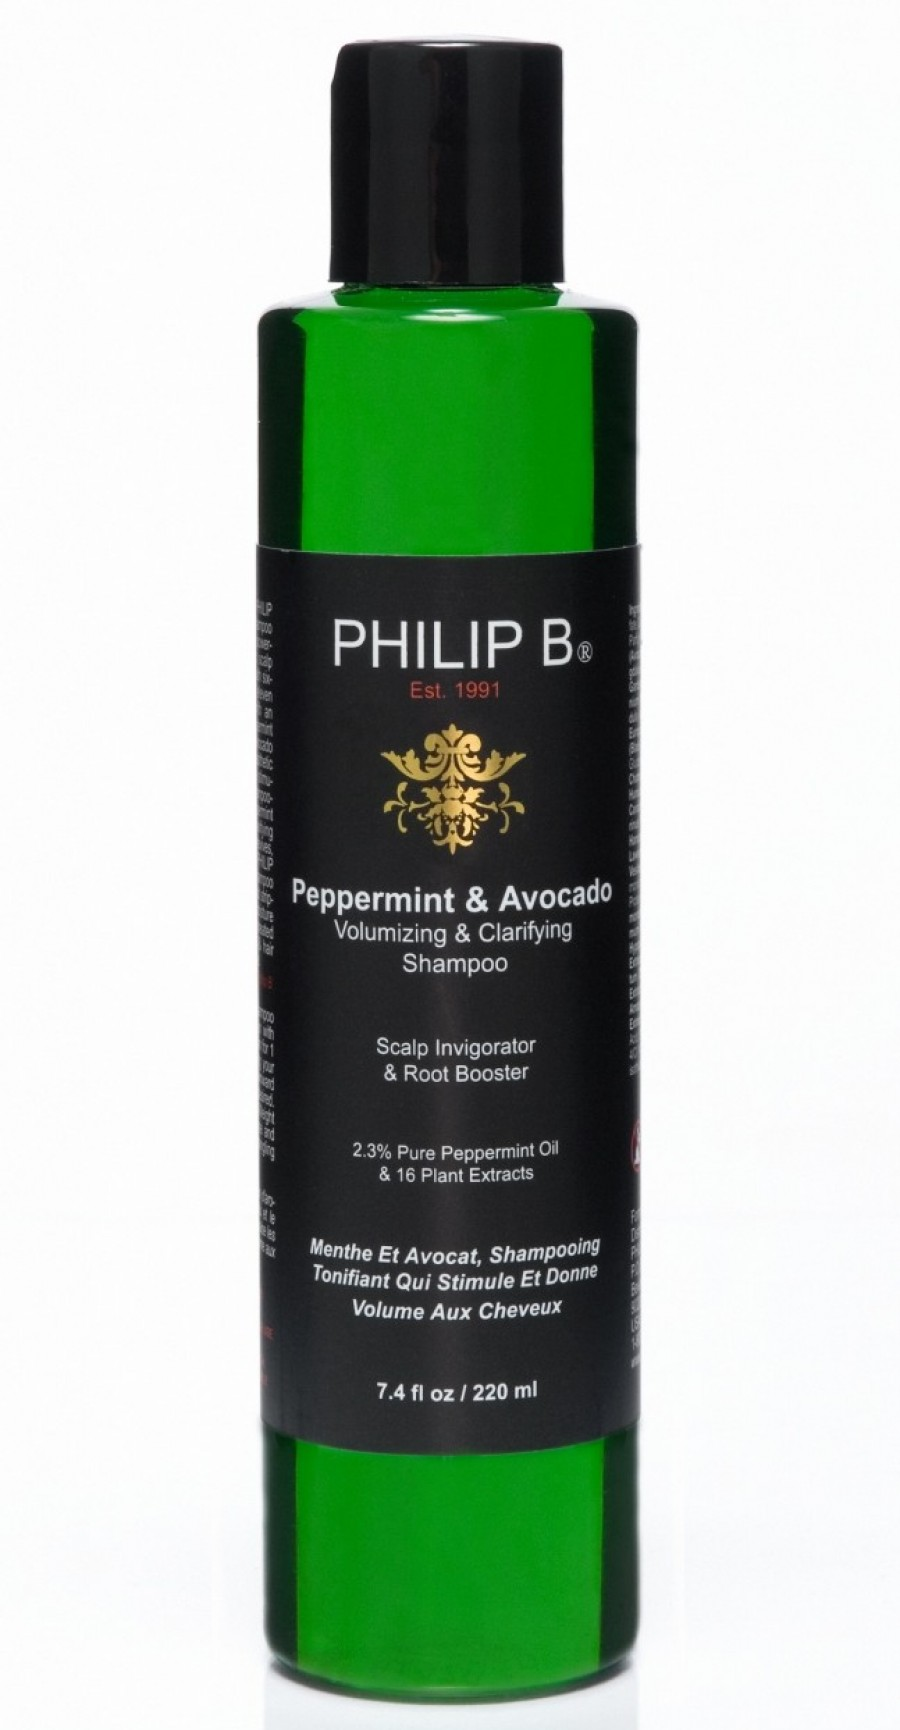 PB Peppermint & Avocado Shampoo 220ml